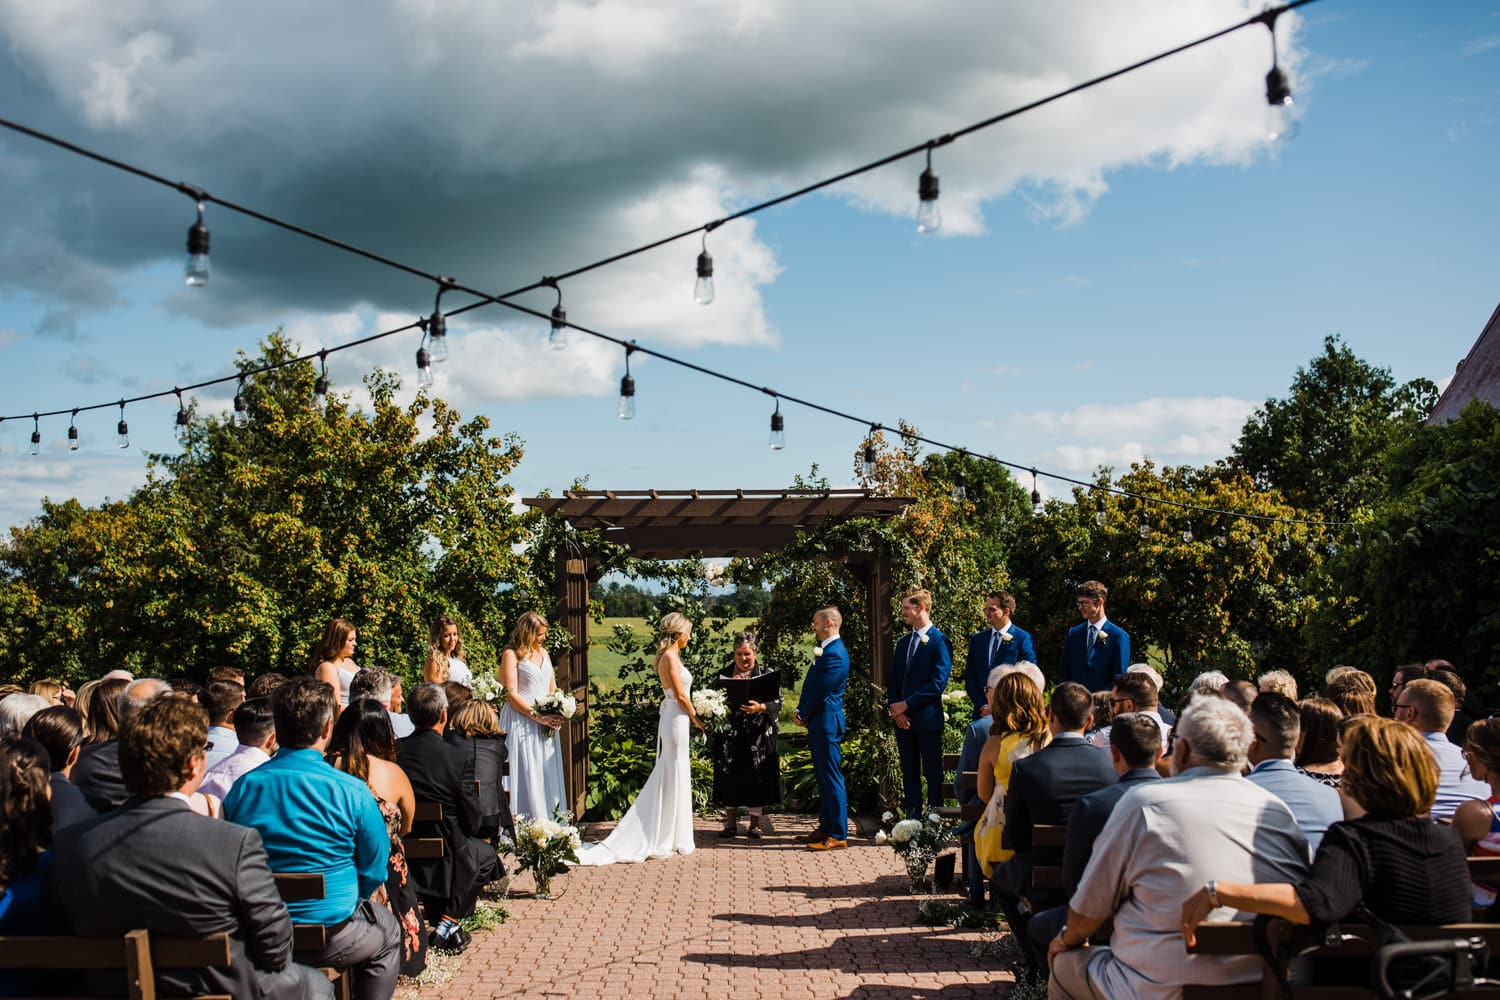 storm clouds over wedding ceremony - summer strathmere wedding - carley teresa photography